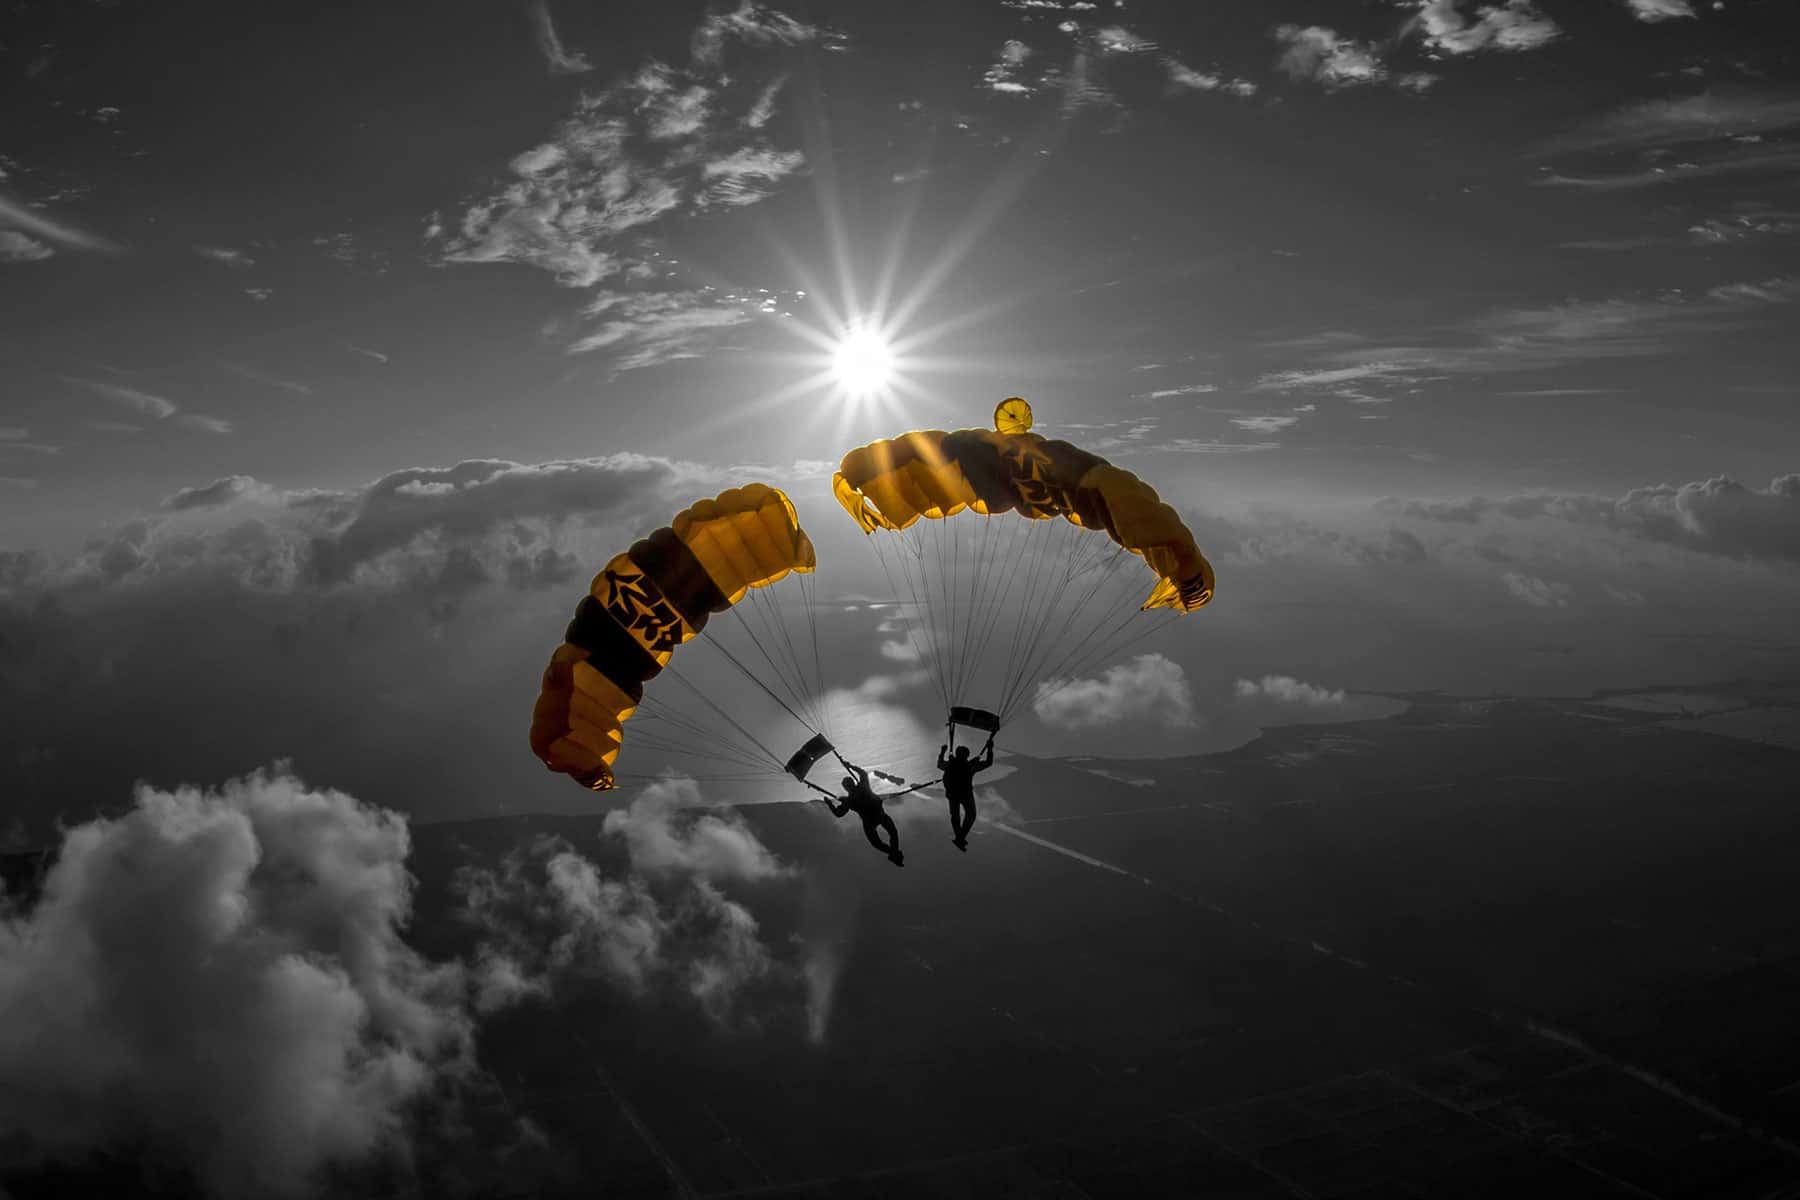 photo essay falling the golden knights demonstration  the golden knights are a demonstration parachute team of the united states army members of the black team staged precision fall landings at the 2017